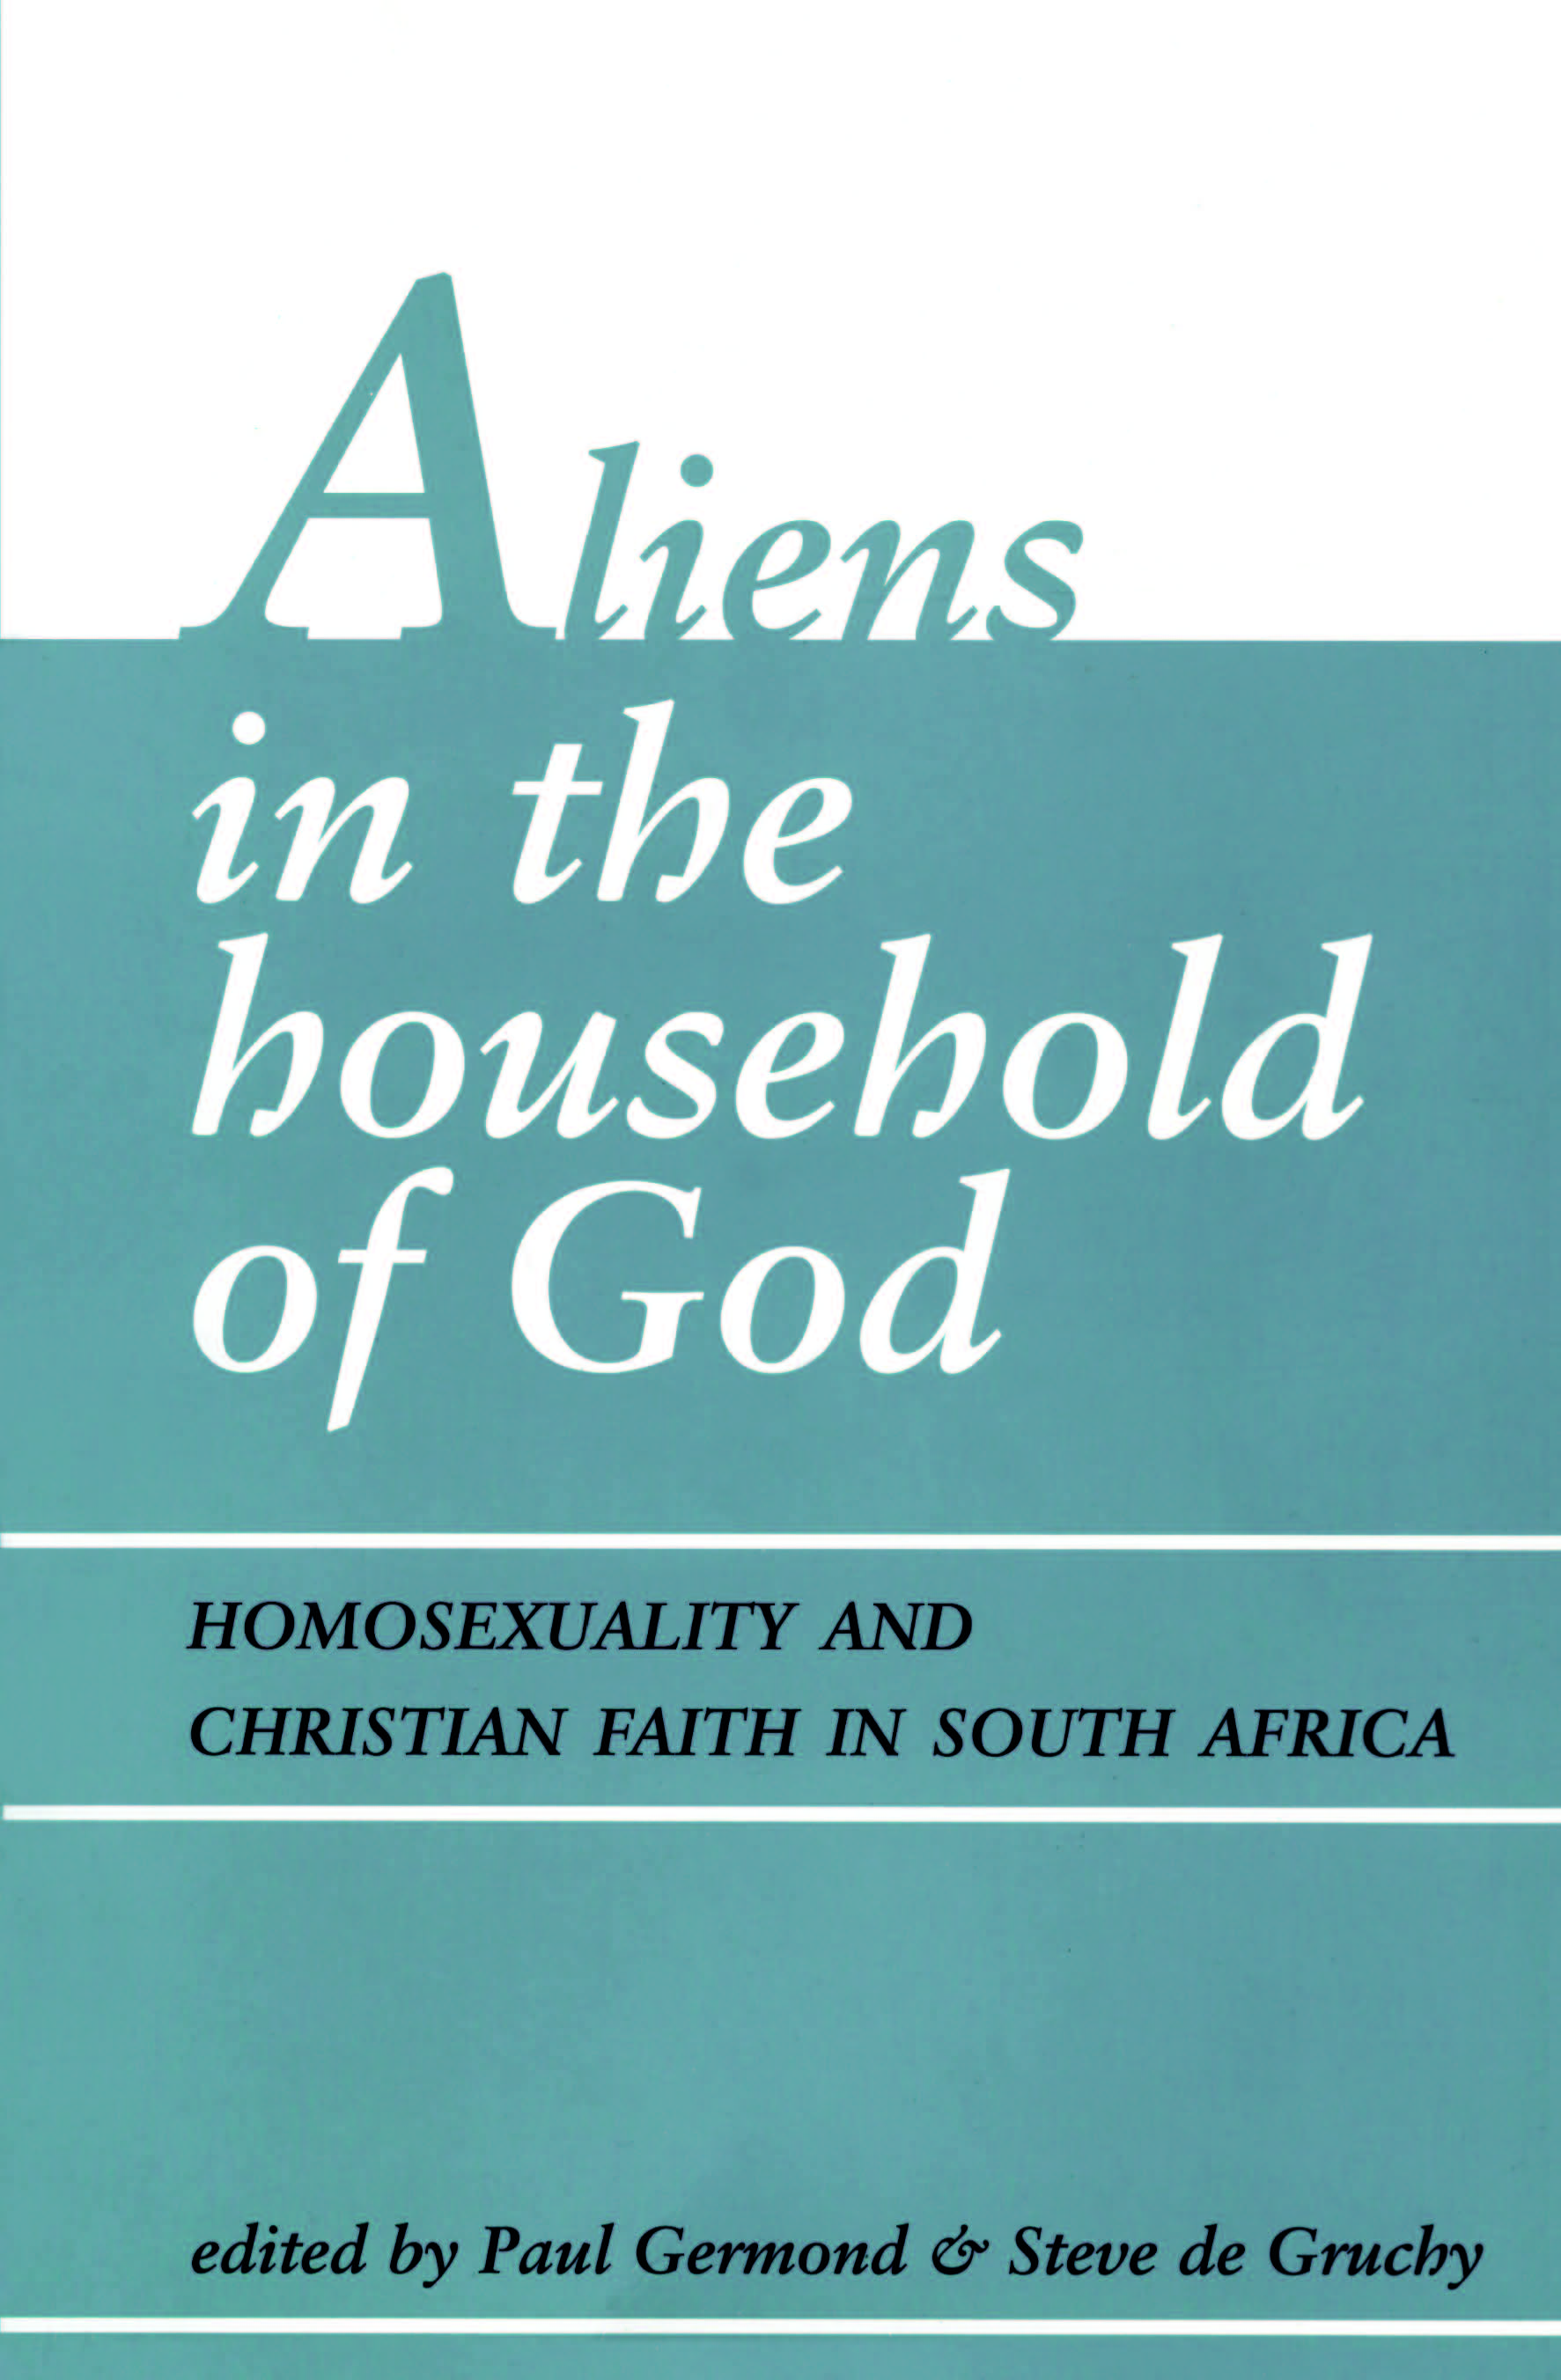 Aliens in the household of God - Paul Germond & Steve de Gruchy (editors)